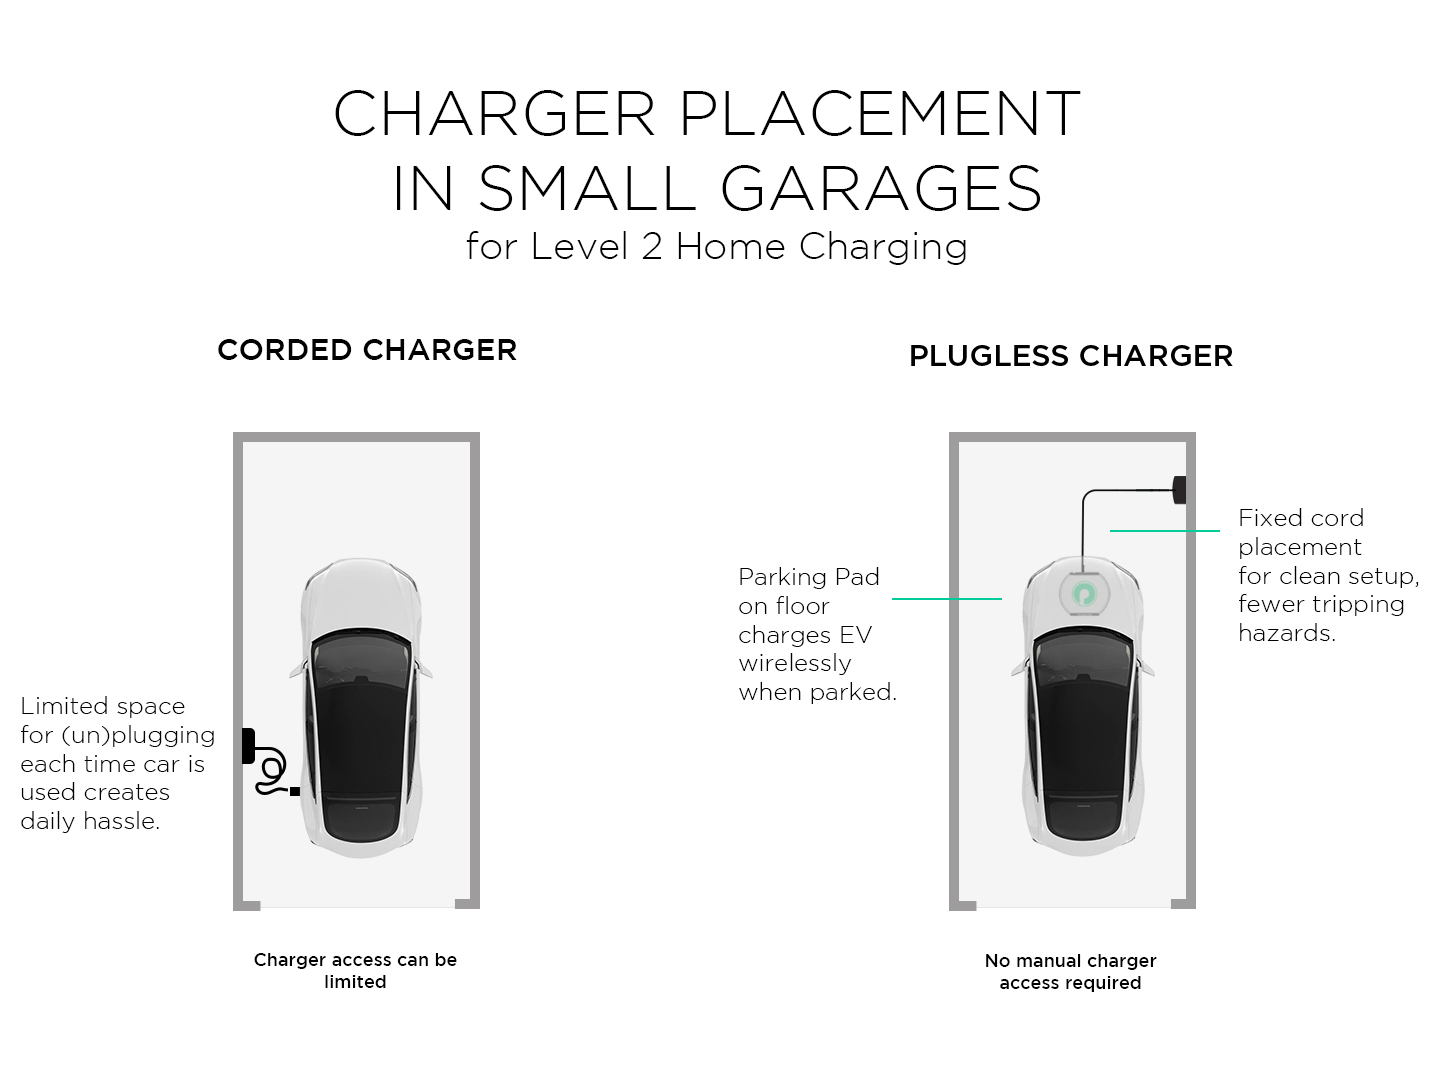 chargerPlacementGraphic - small garage